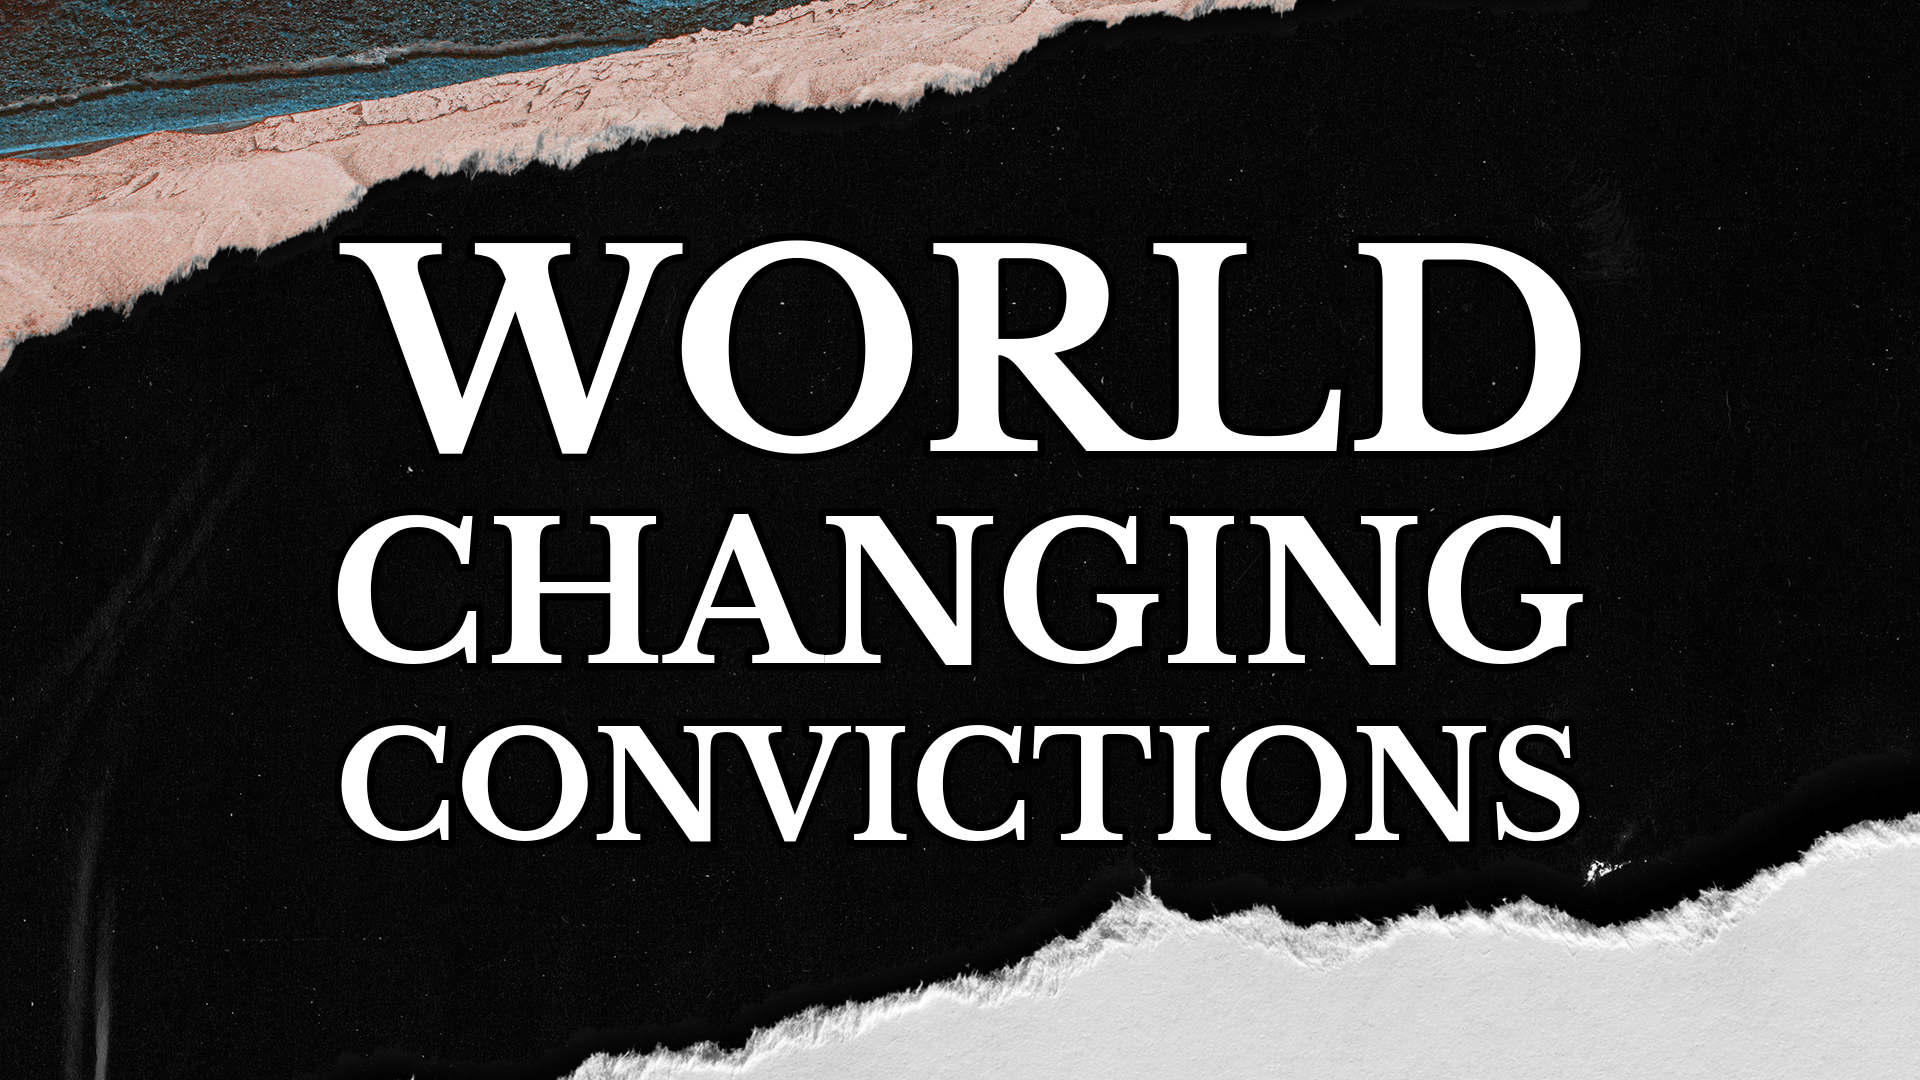 Convictions - The Great Commission